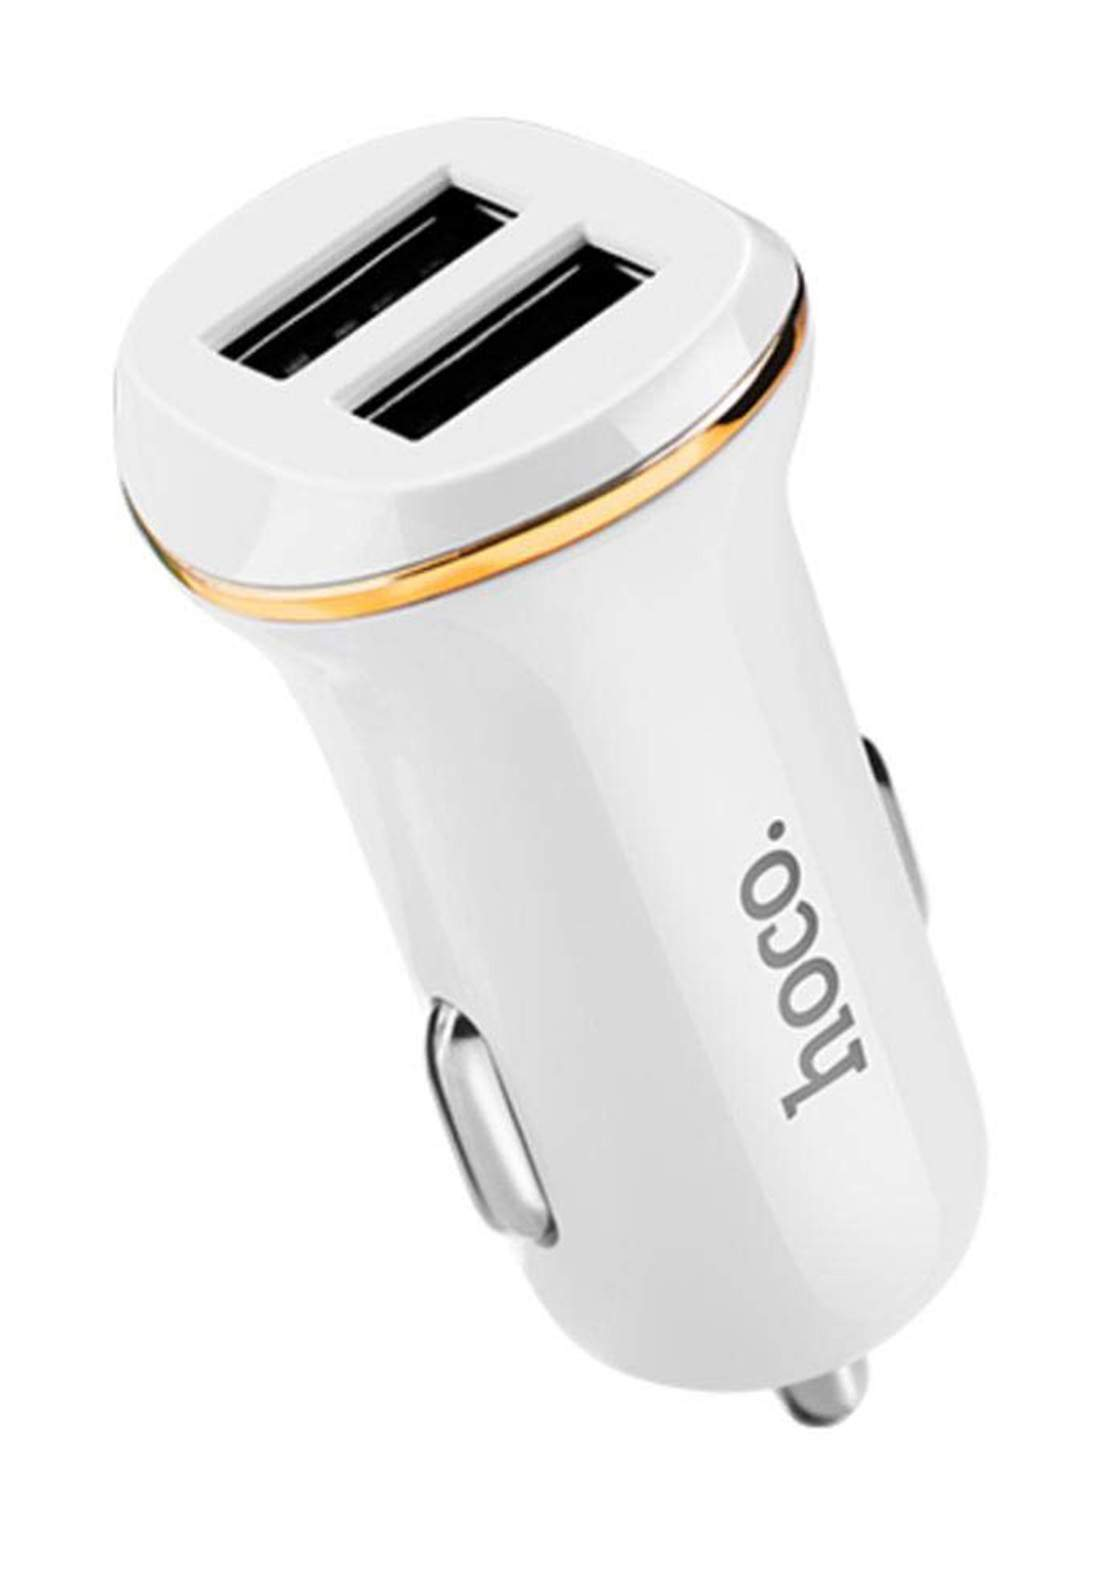 HOCO Z1 Double-ported Car Charger  - White شاحن سيارة